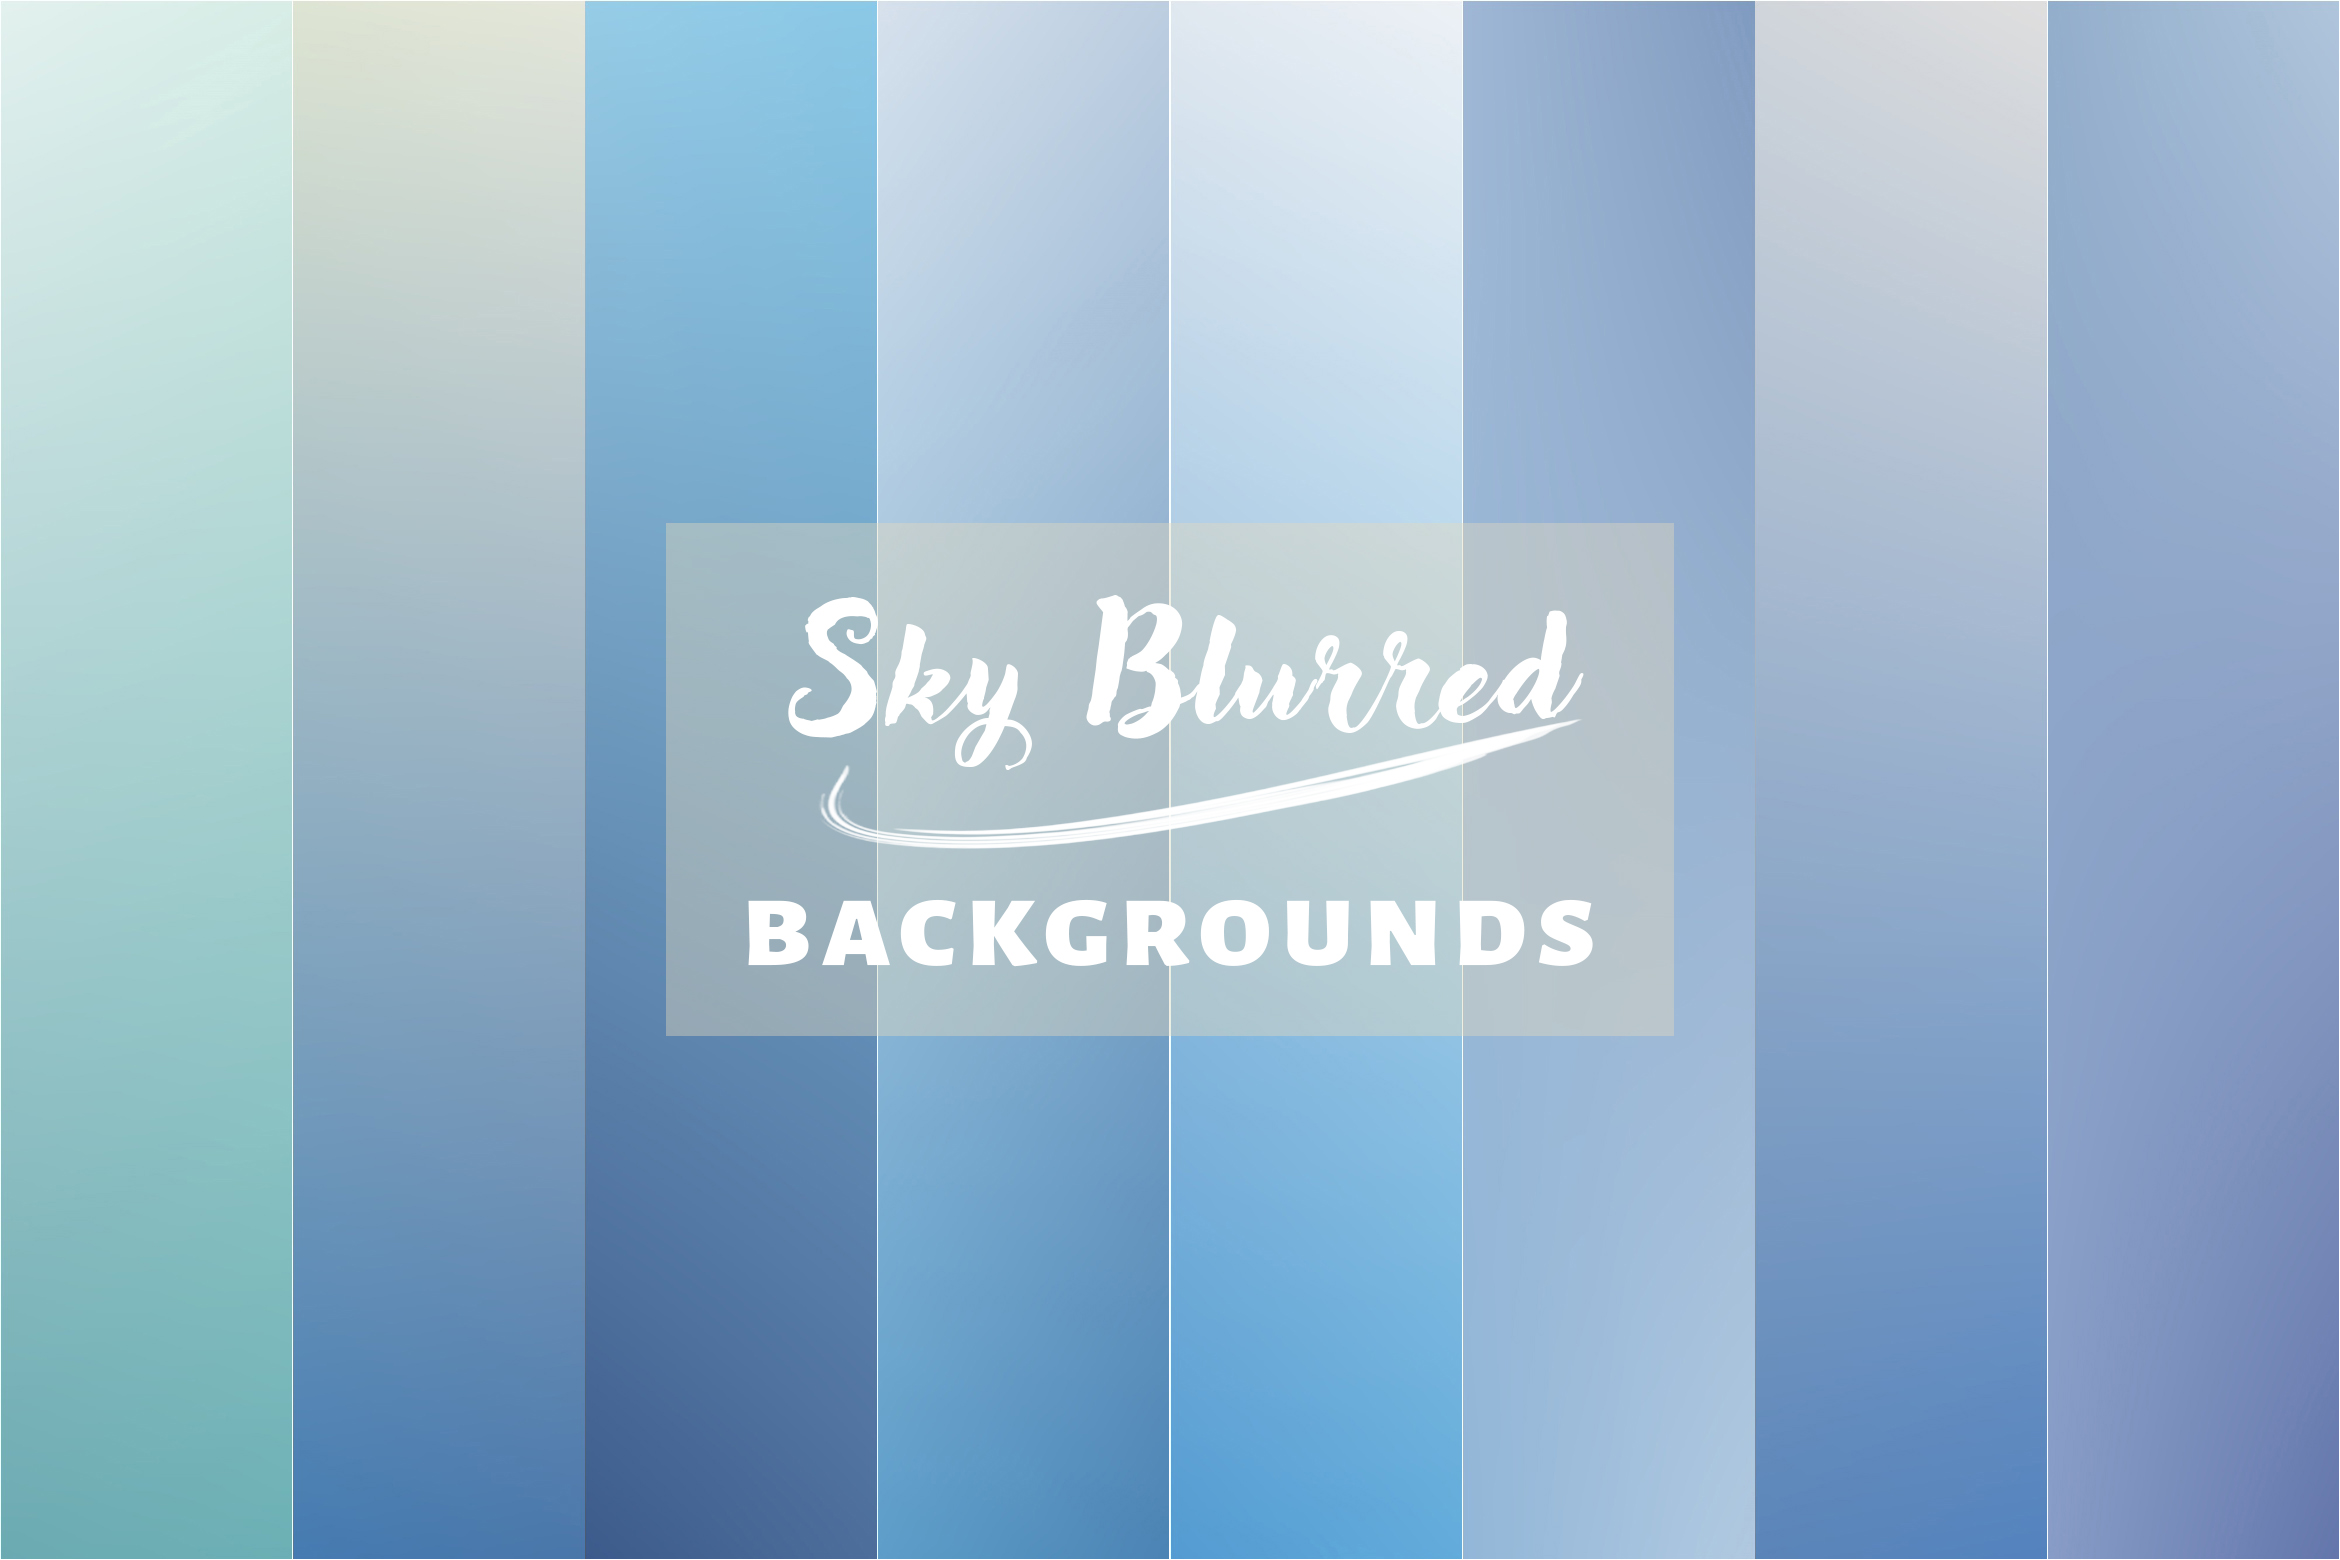 20 Sky Blurred Backgrounds JPG in High Resolution example image 3